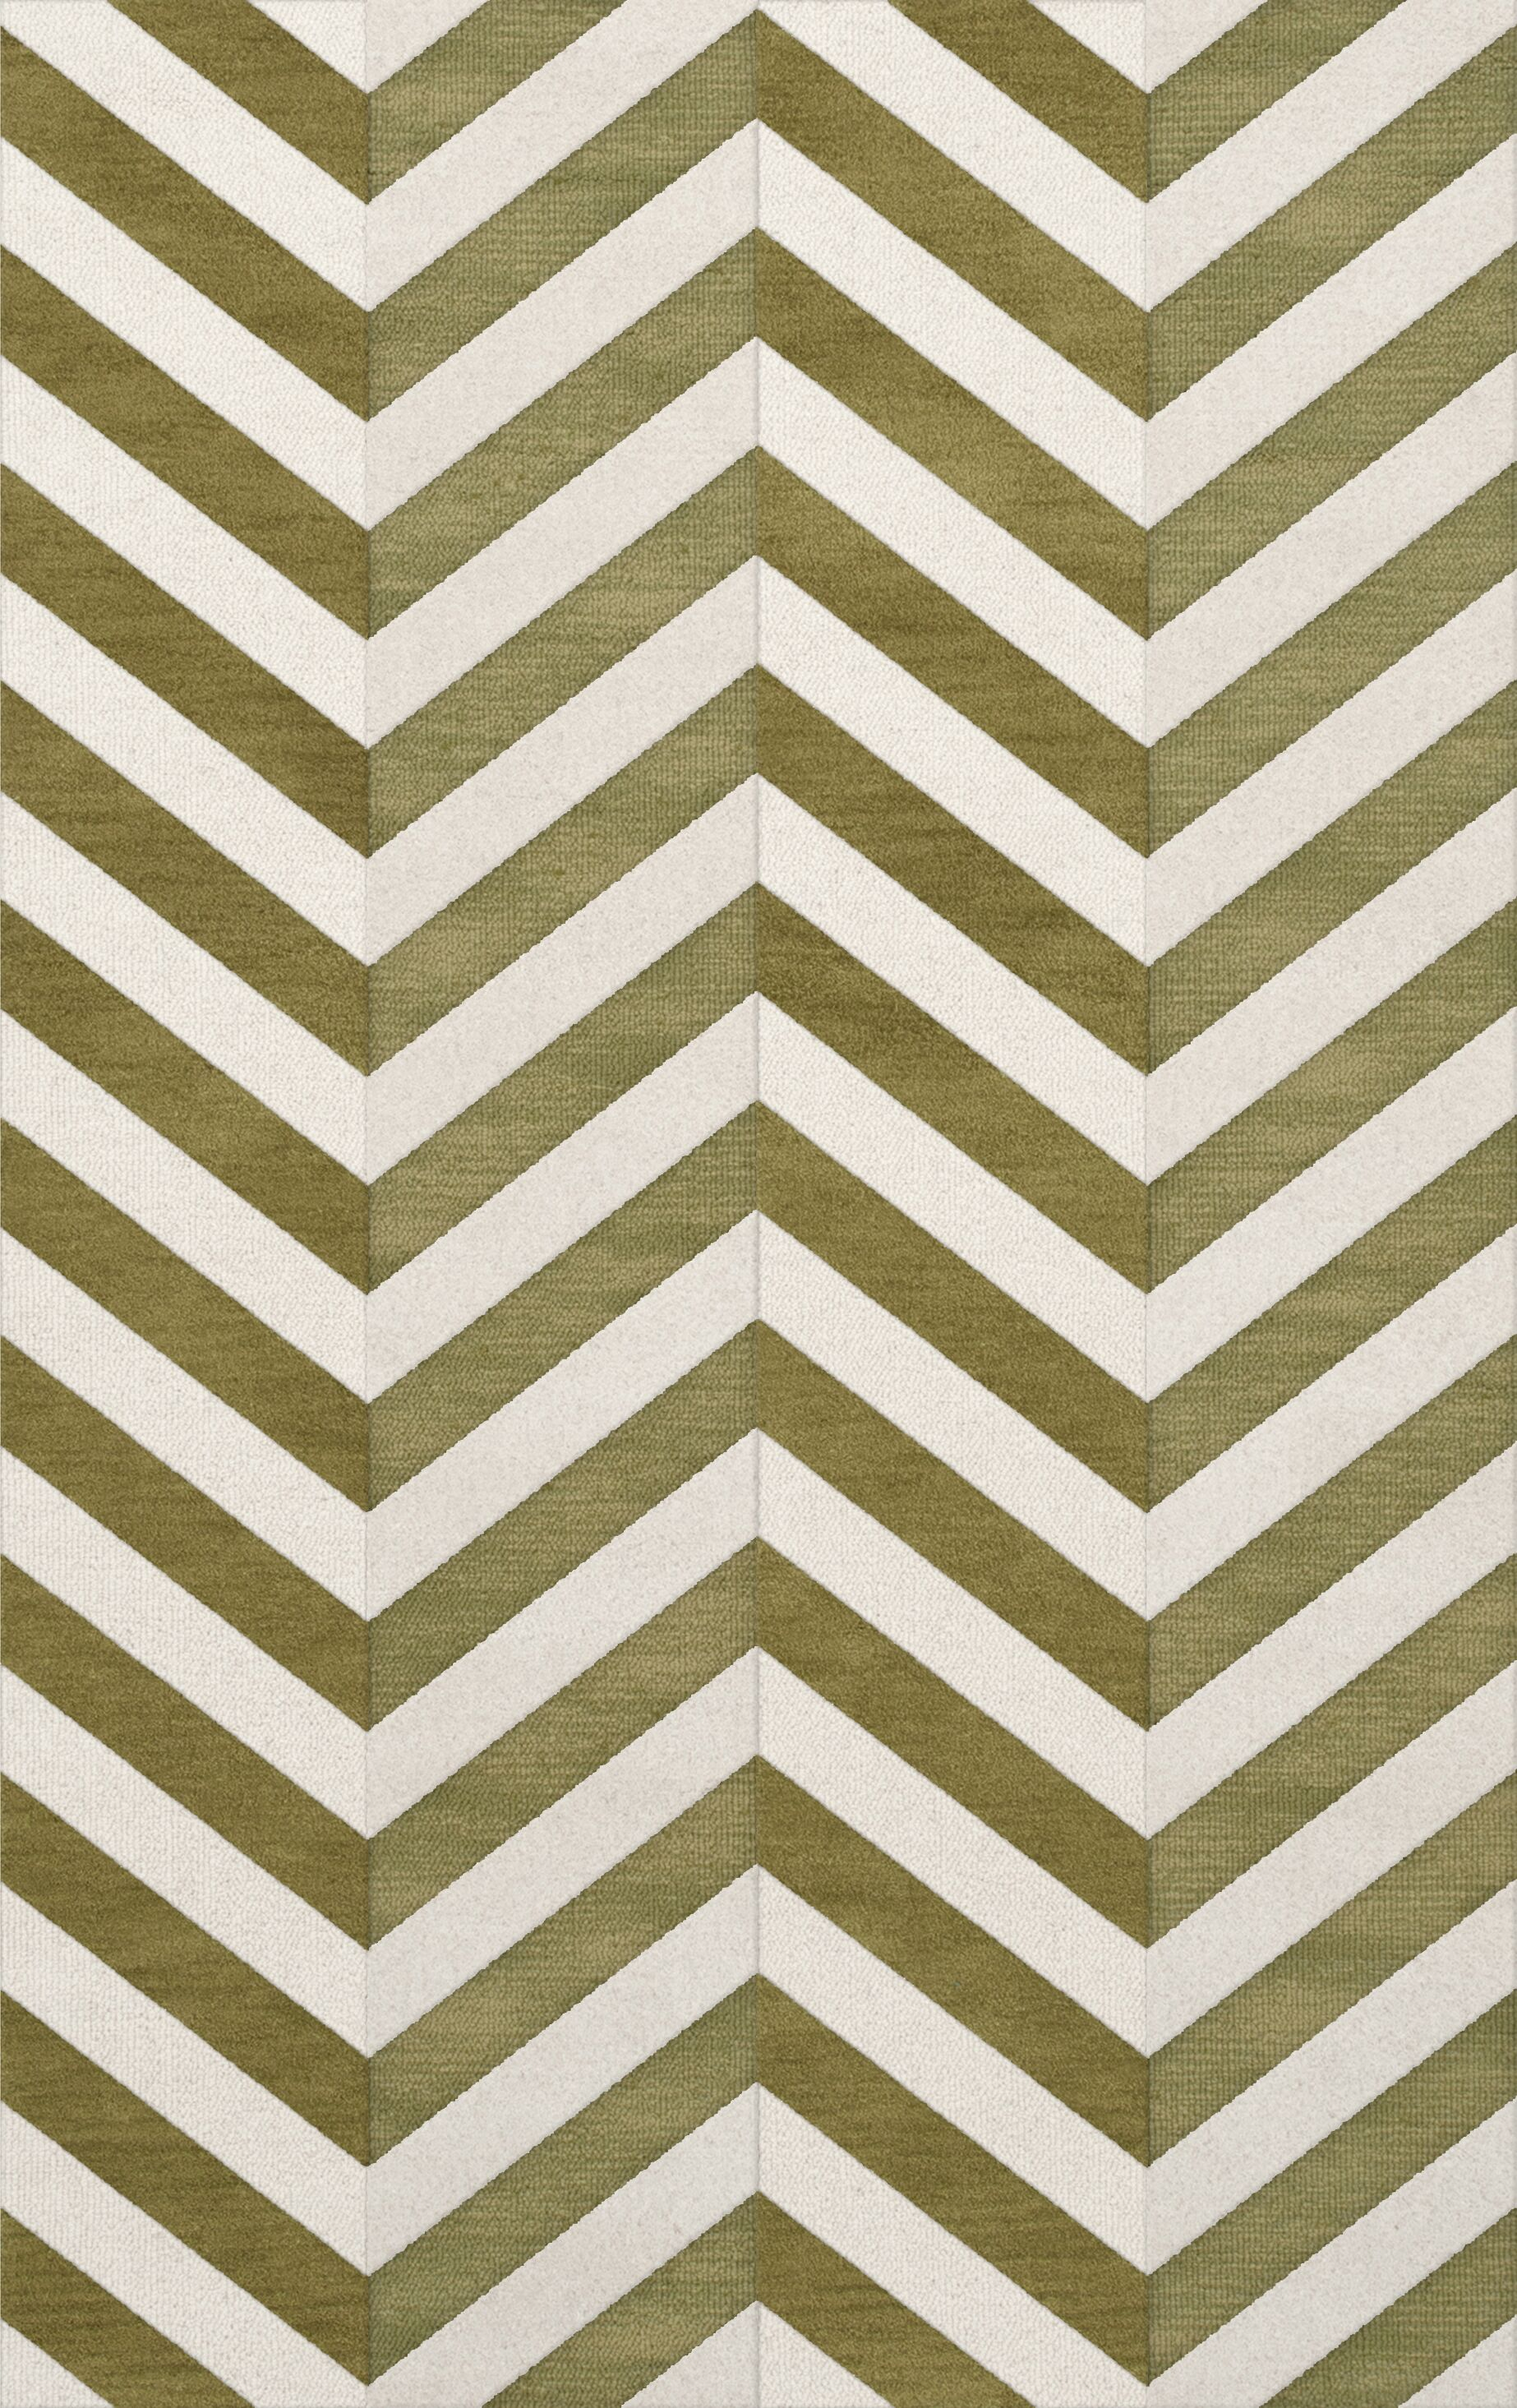 Shellenbarger Wool Herb/White Area Rug Rug Size: Rectangle 9' x 12'